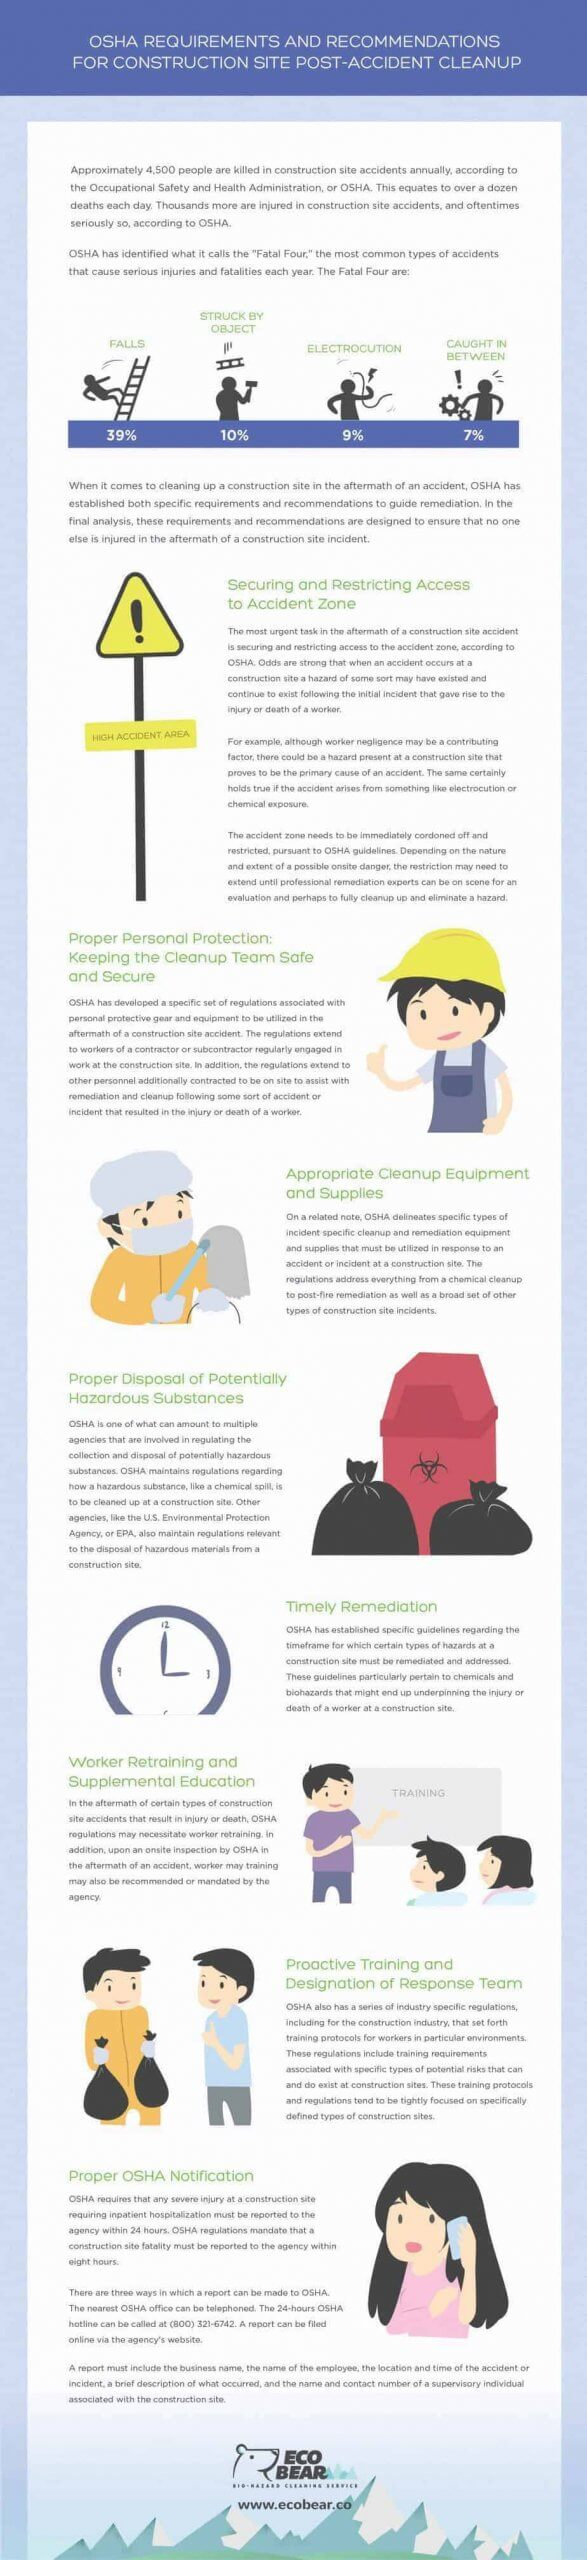 Infographic - OSHA Requirements And Recommendations For Construction Site Post-Accident Cleanup